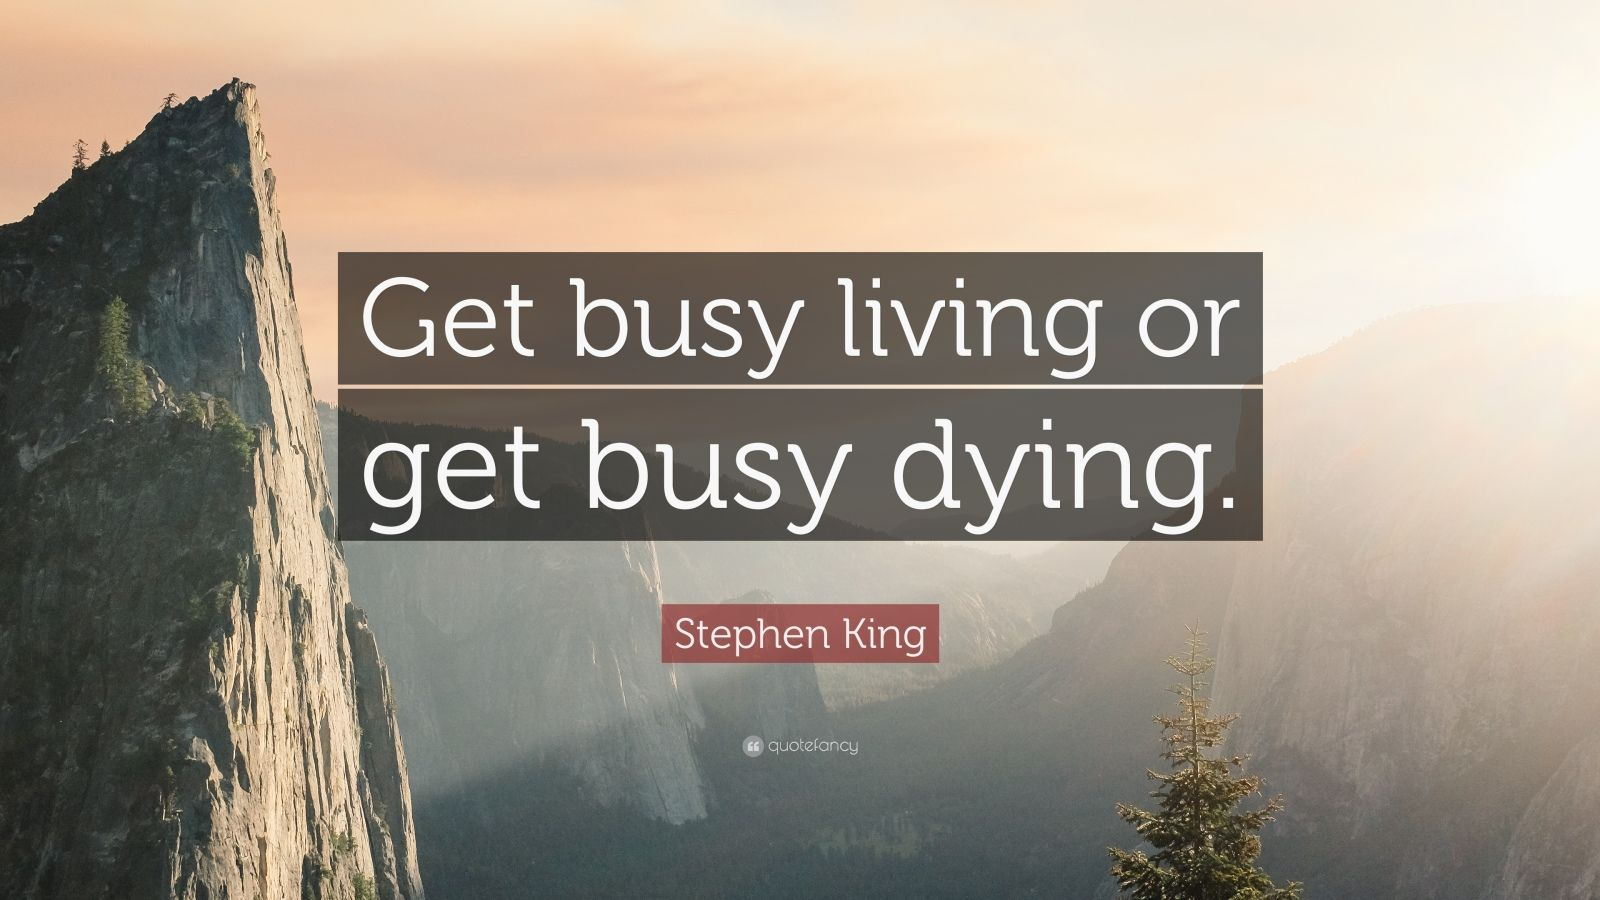 Love Inspiring Quotes Wallpaper Stephen King Quote Get Busy Living Or Get Busy Dying